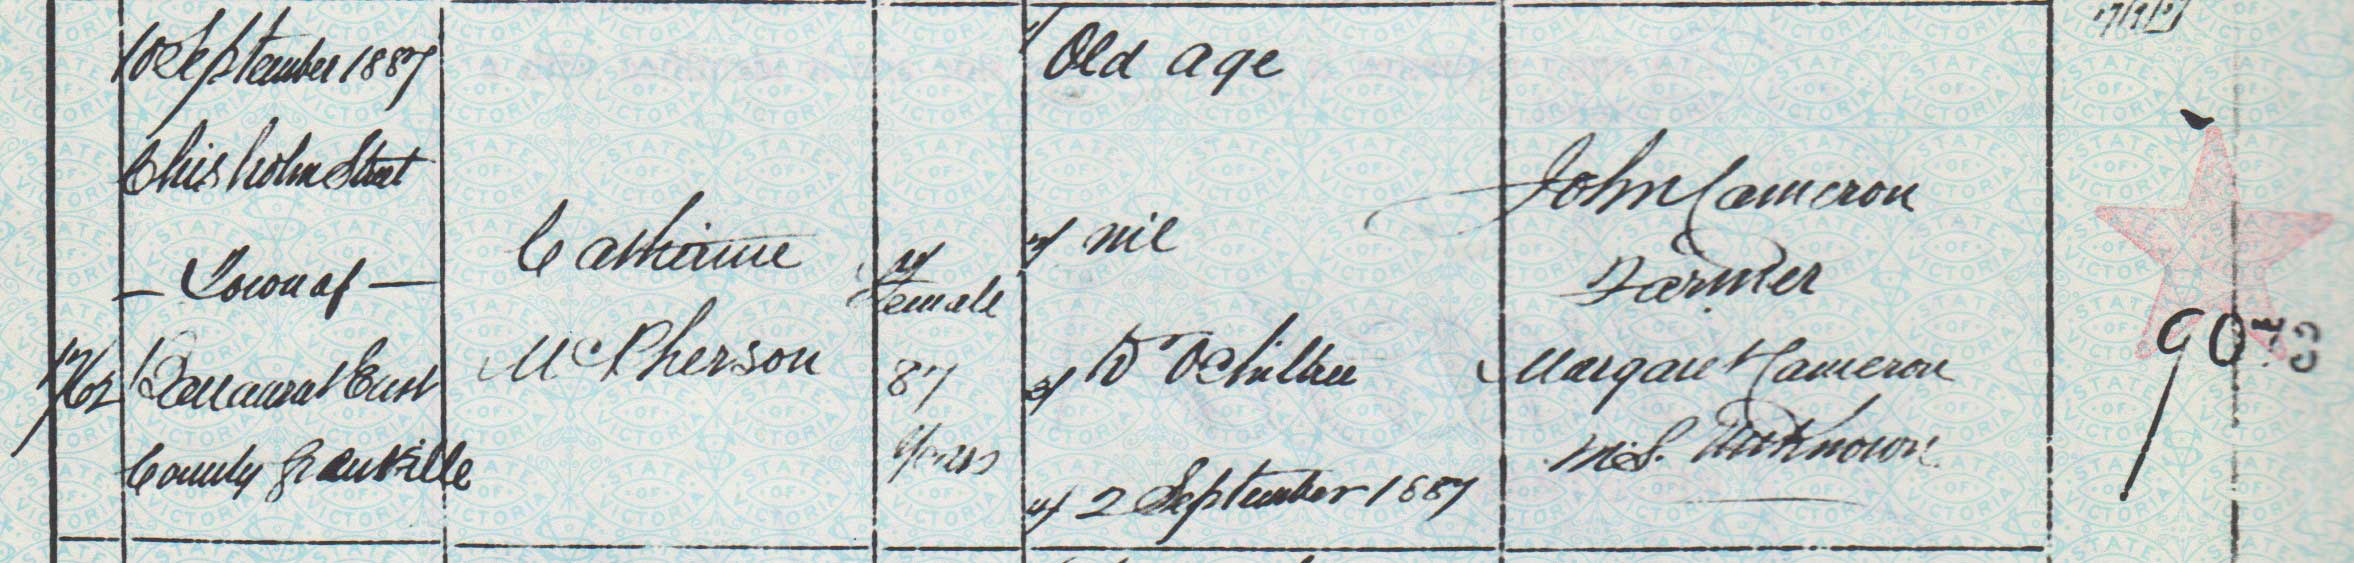 Catherine Cameron death certificate 1887 part 1